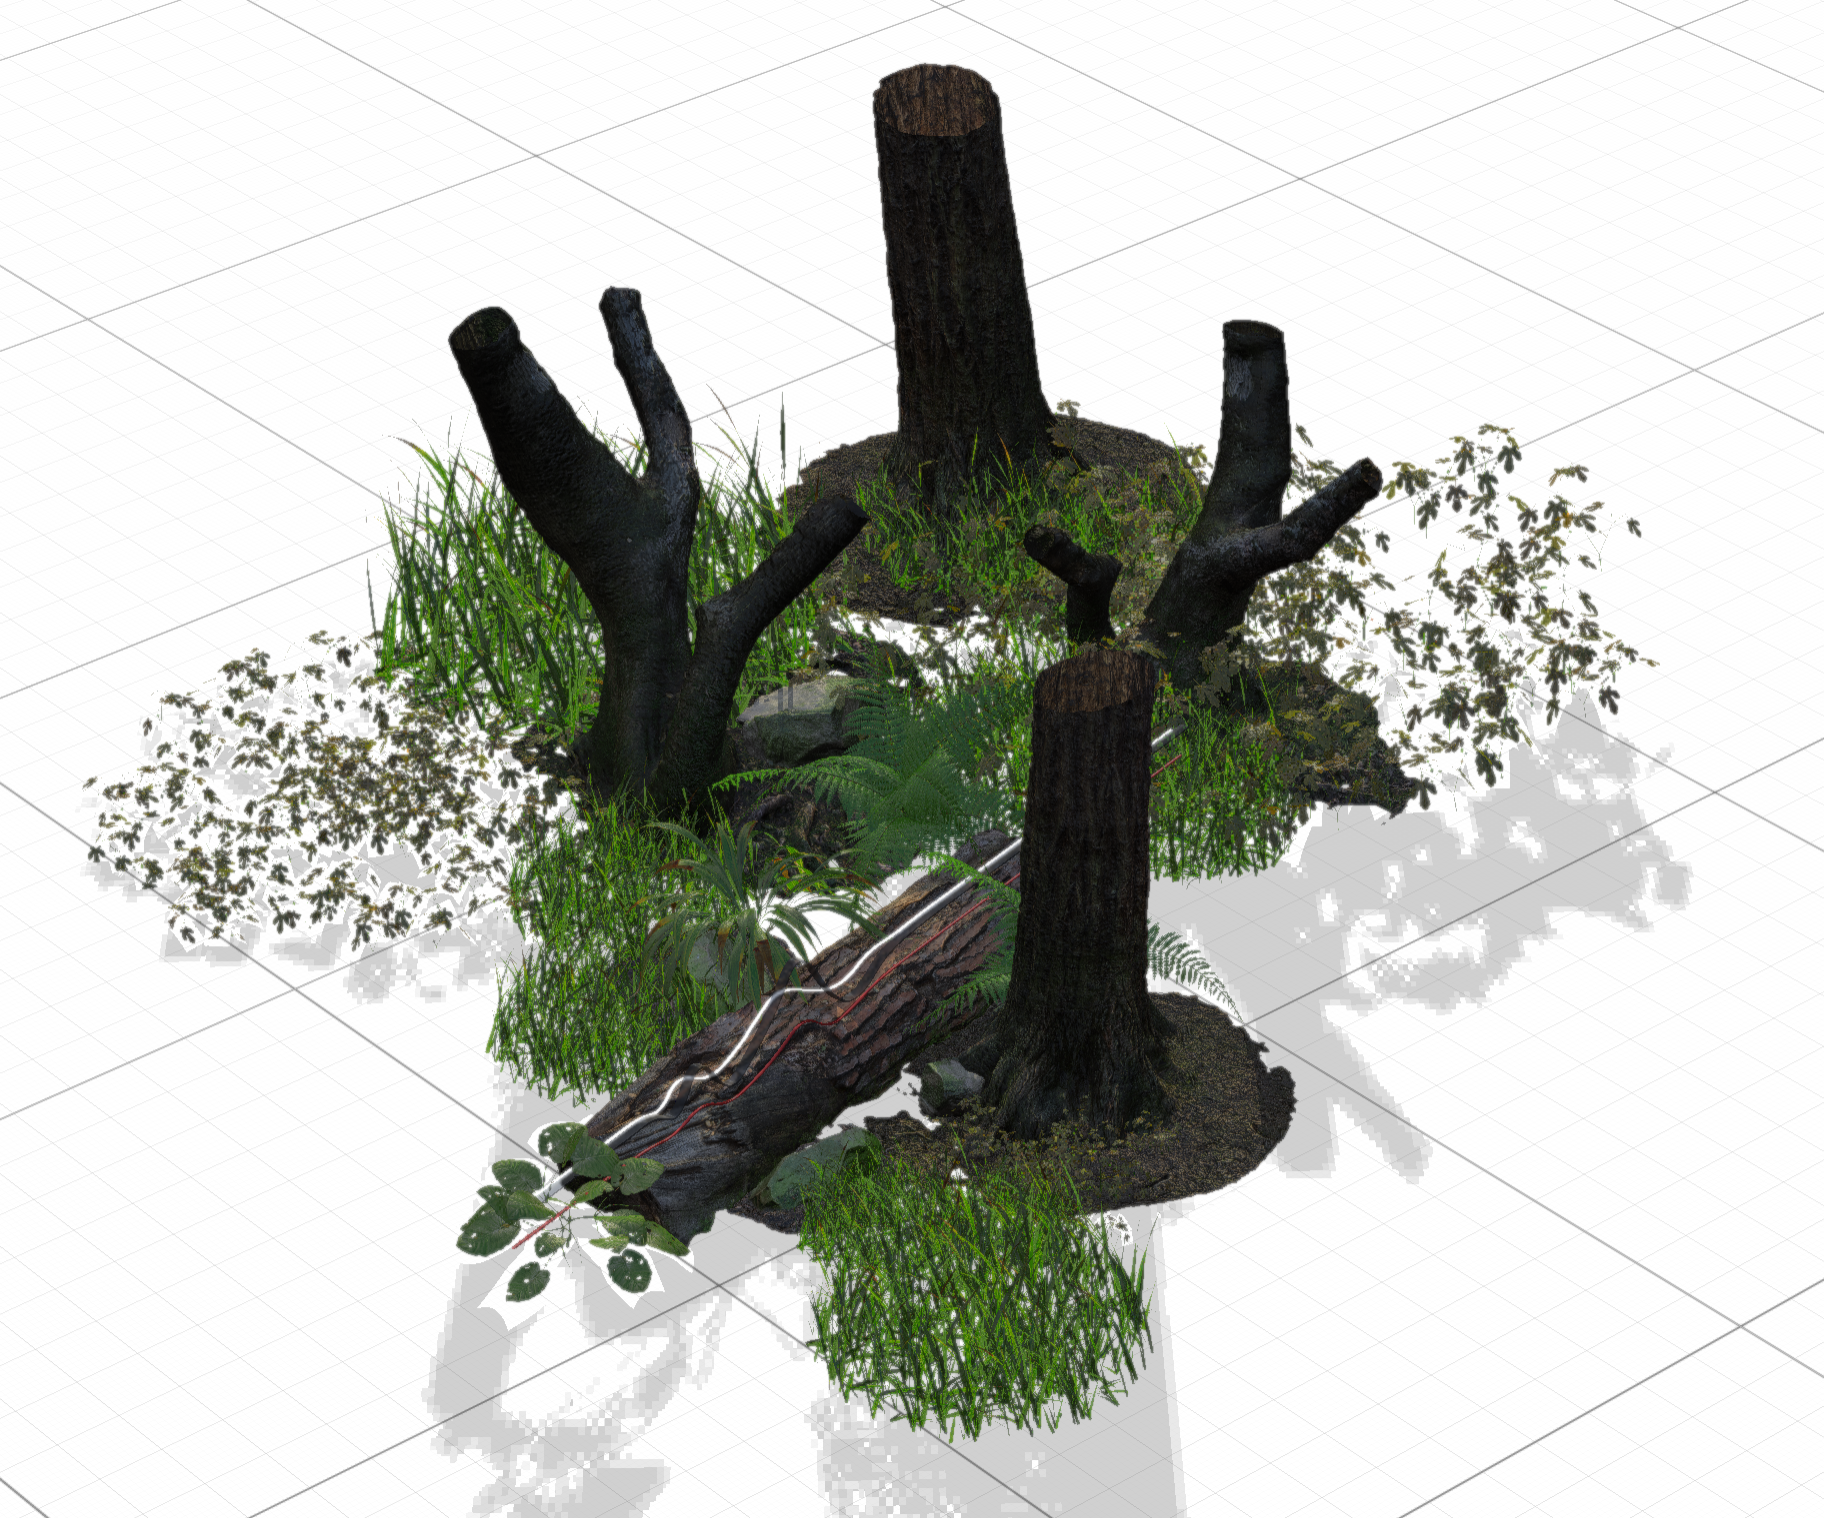 Objects in a 3D forest scene indicate how light will interact with the environment